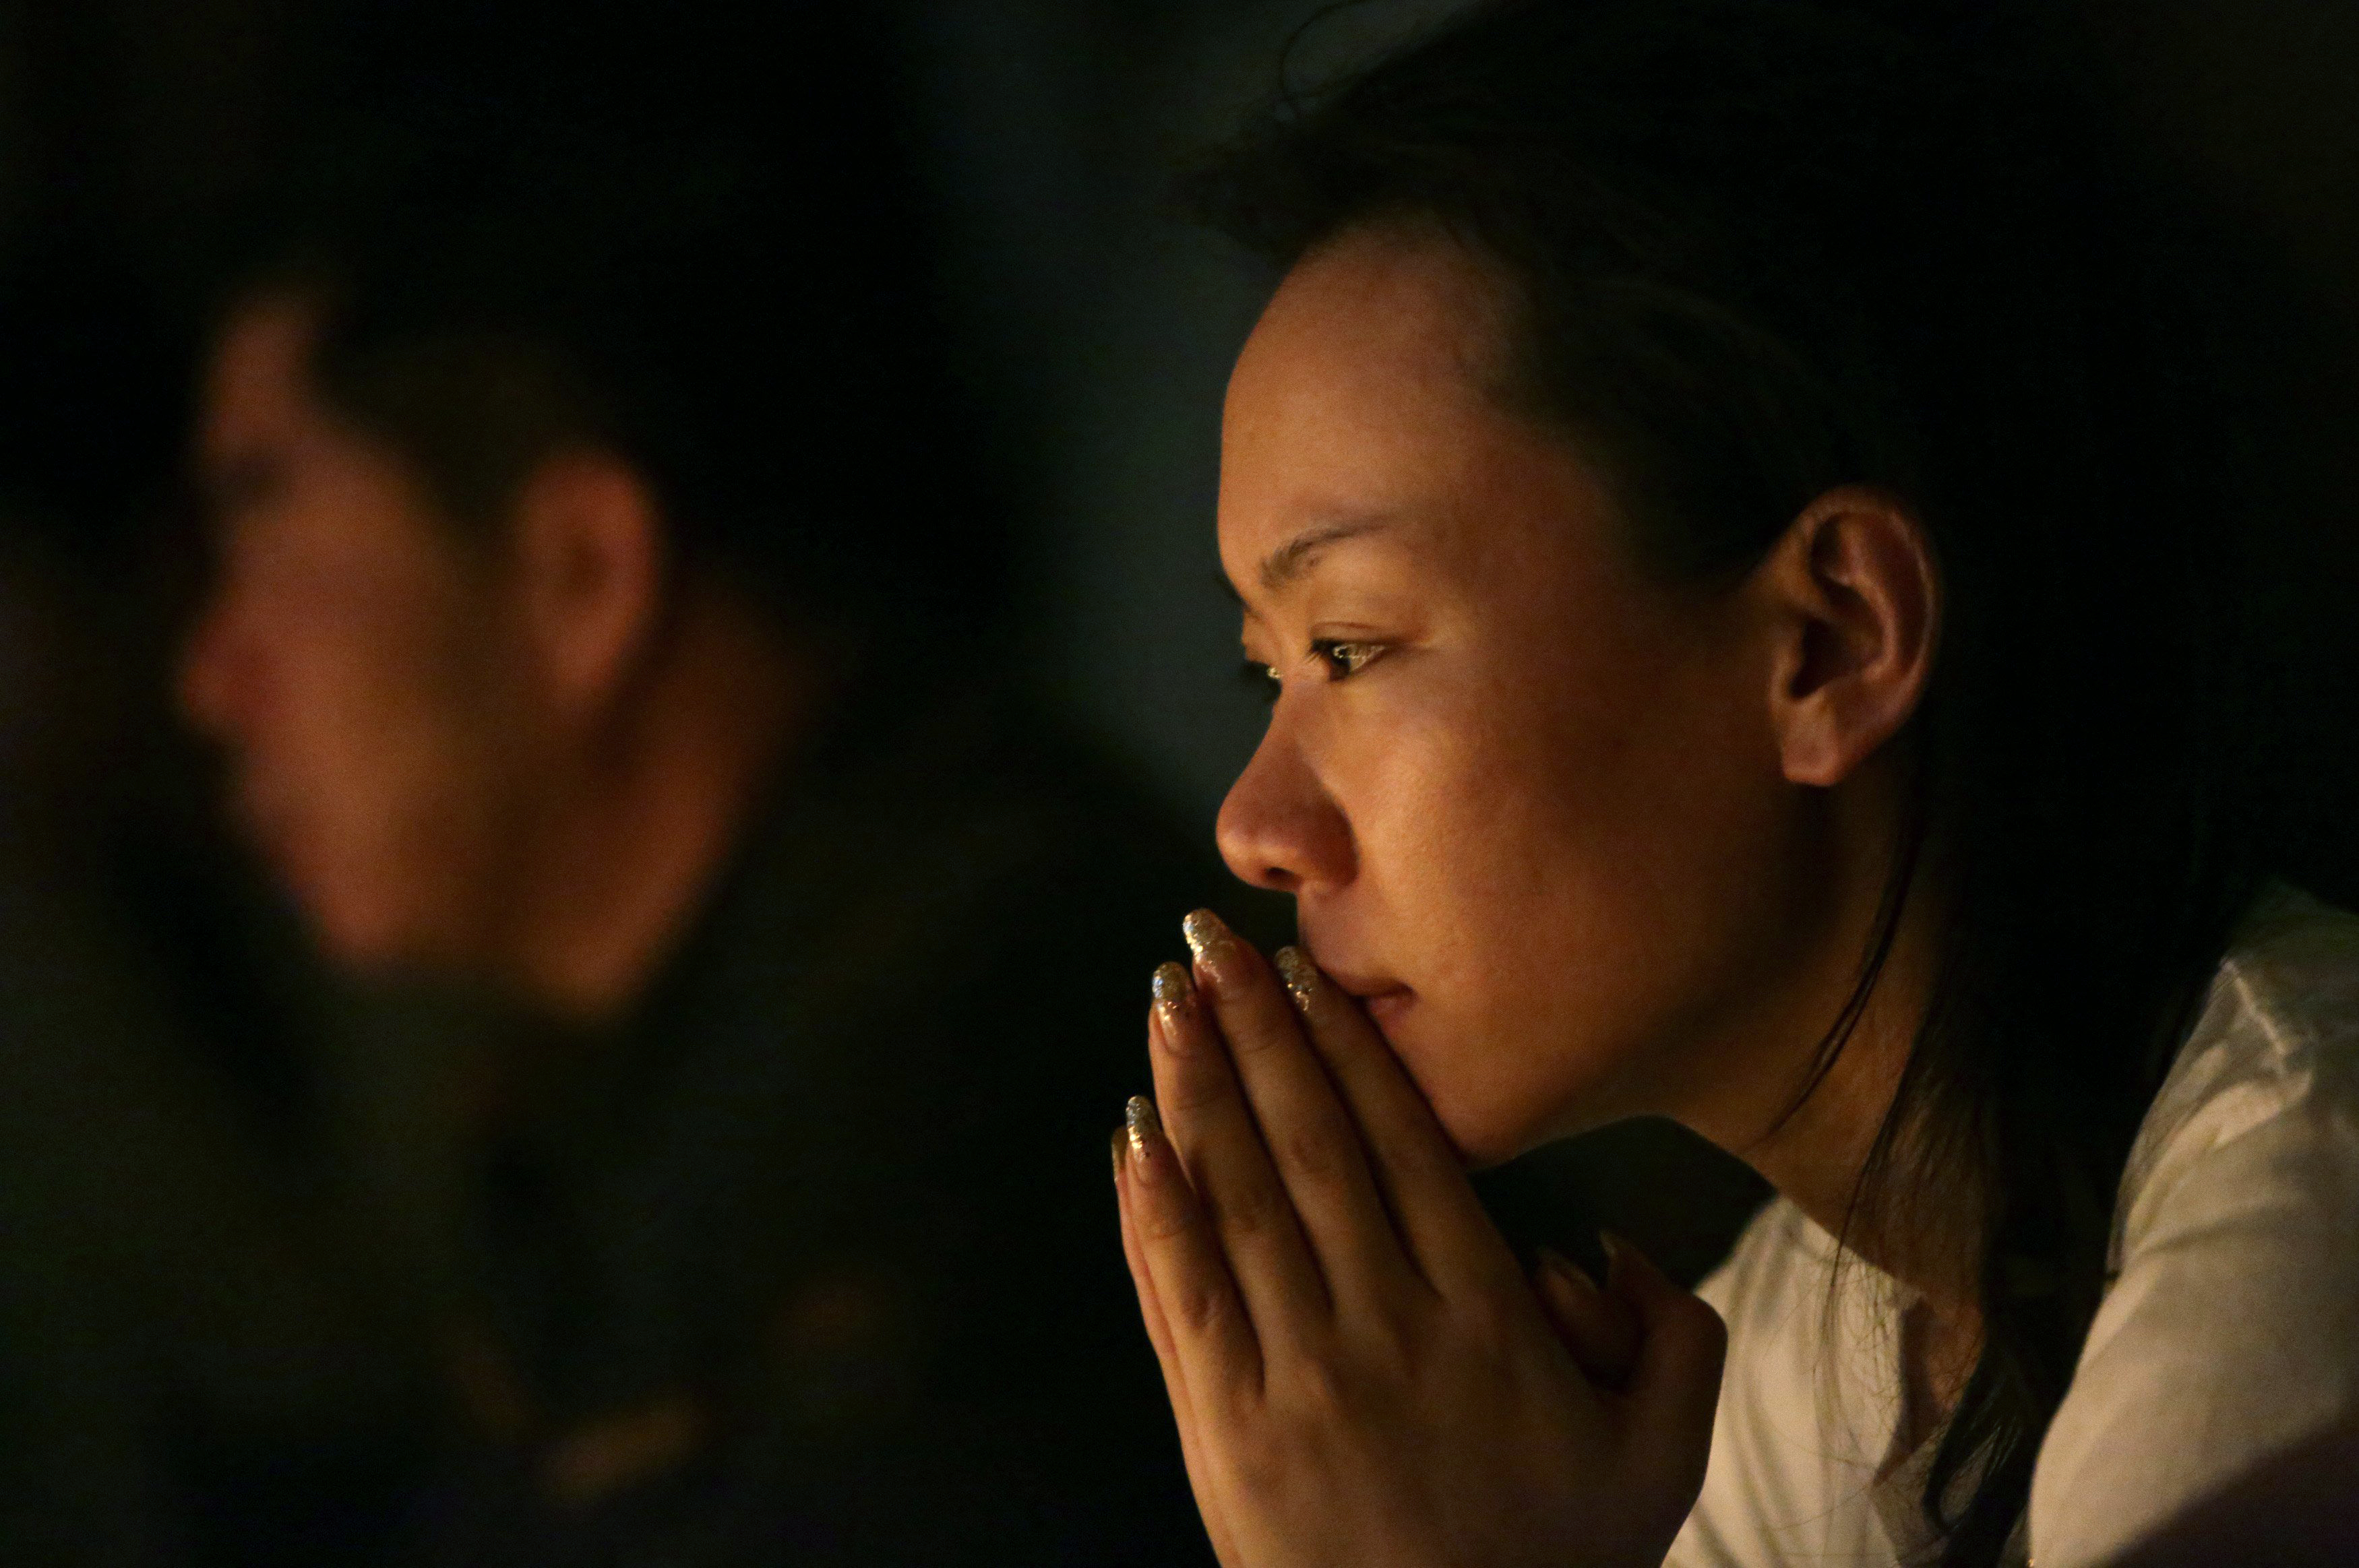 Family members pray during a candlelight vigil for passengers onboard the missing Malaysia Airlines Flight MH370 in the early morning, at Lido Hotel, in Beijing on April 8, 2014.